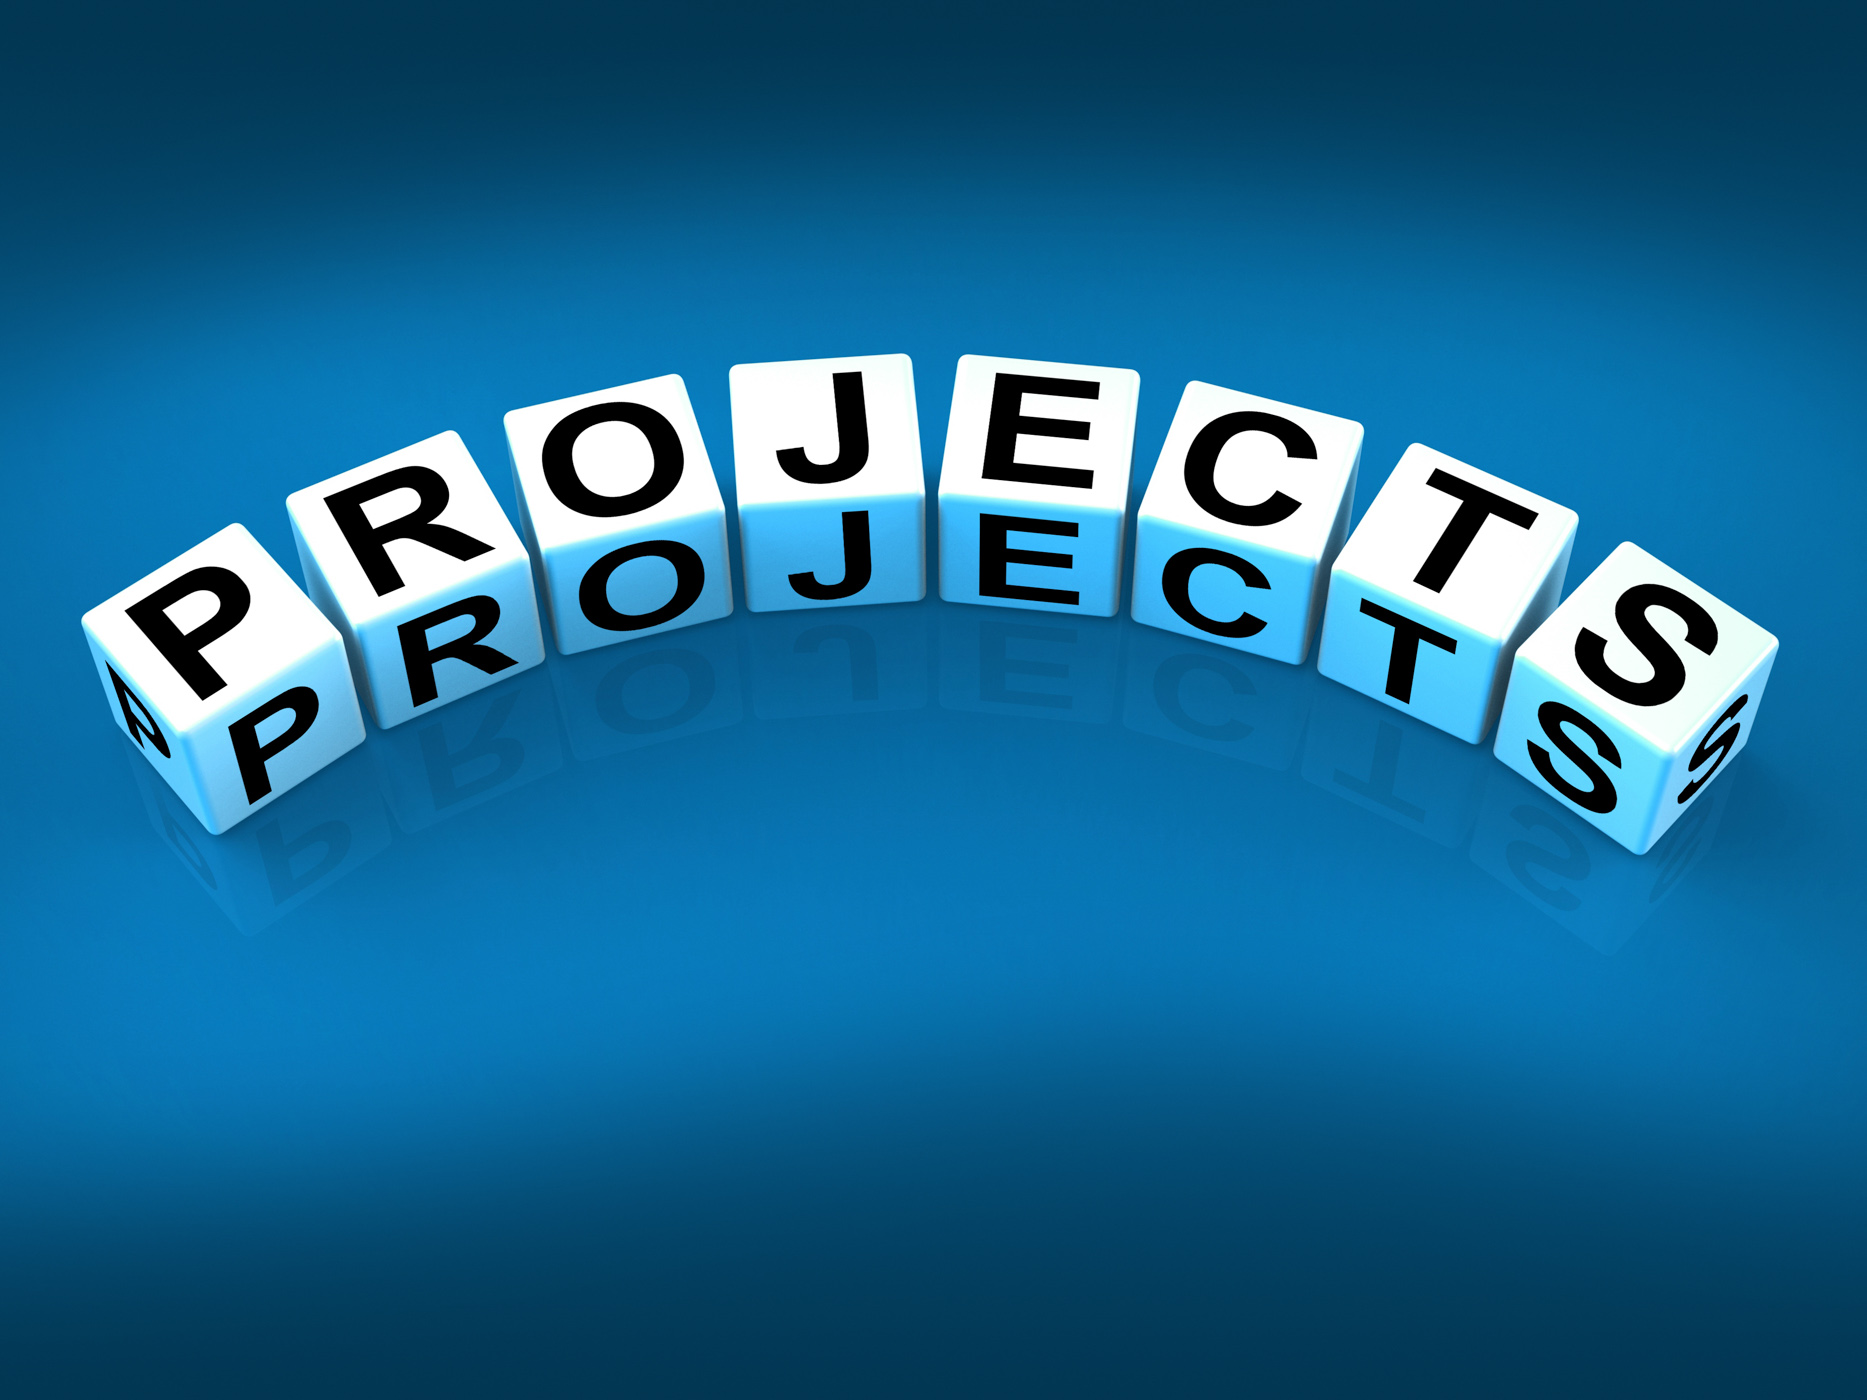 Projects blocks represent ideas activities tasks and enterprises photo